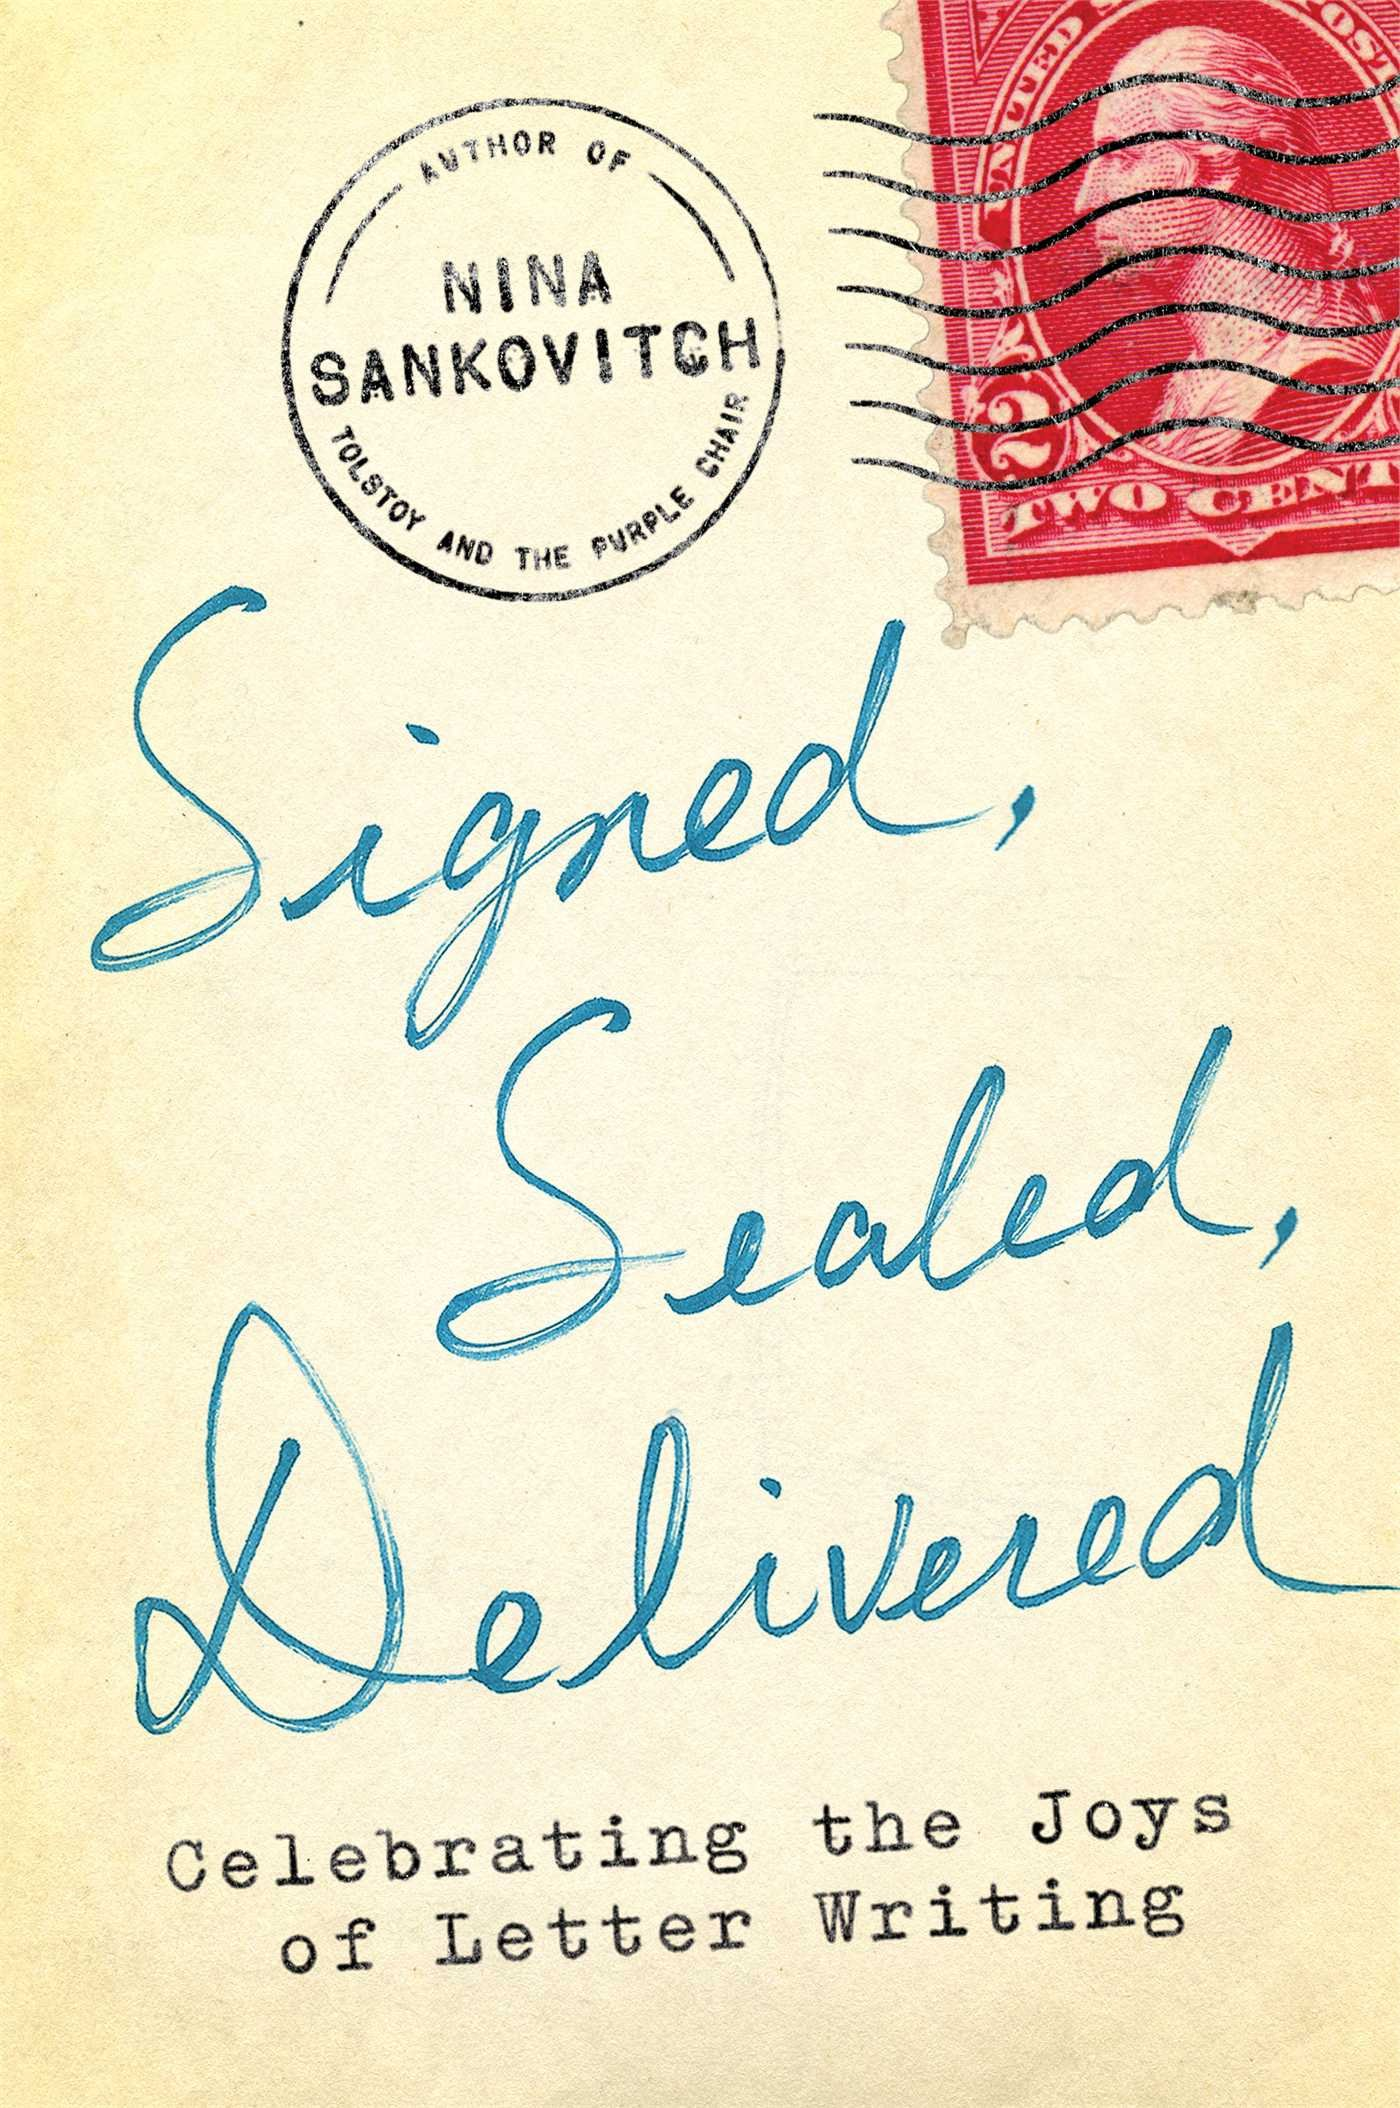 Signed sealed delivered celebrating the joys of letter writing signed sealed delivered celebrating the joys of letter writing nina sankovitch 9781451687156 amazon books spiritdancerdesigns